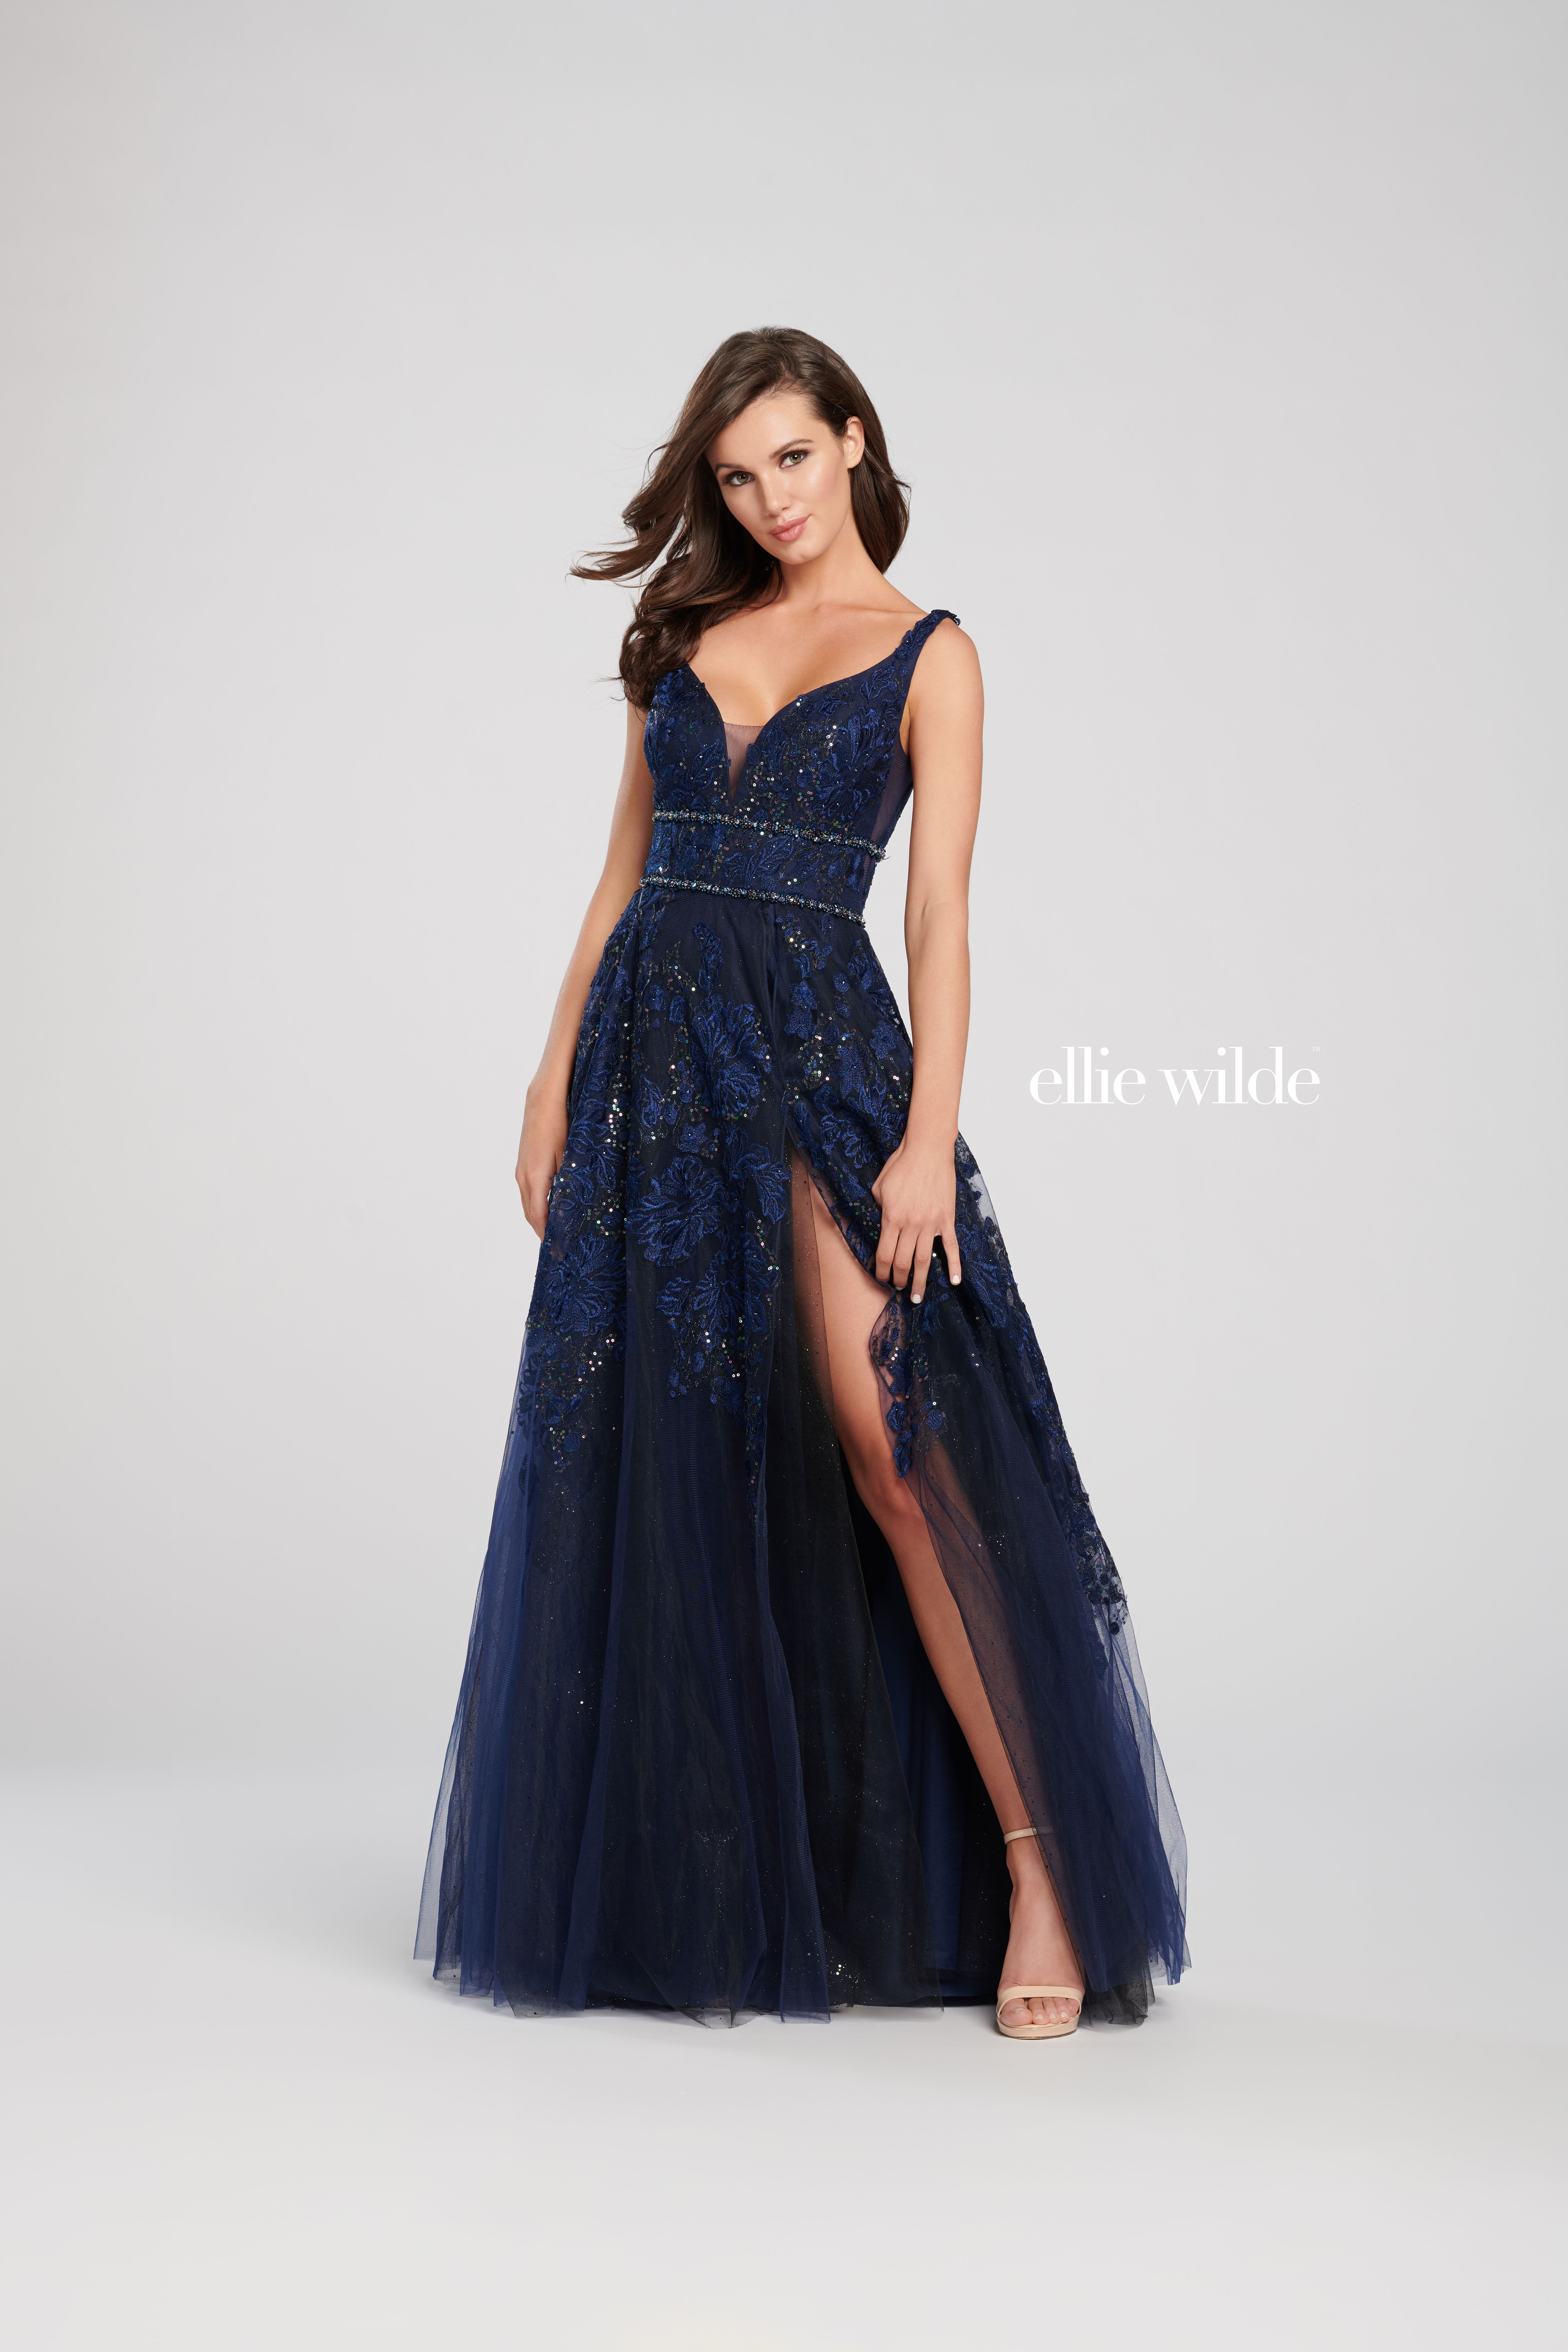 57d5d940a91e ... this sleeveless sequin and sparkle tulle A-line gown adorned with embroidered  lace features a plunging curved V-neck with an illusion panel, ...